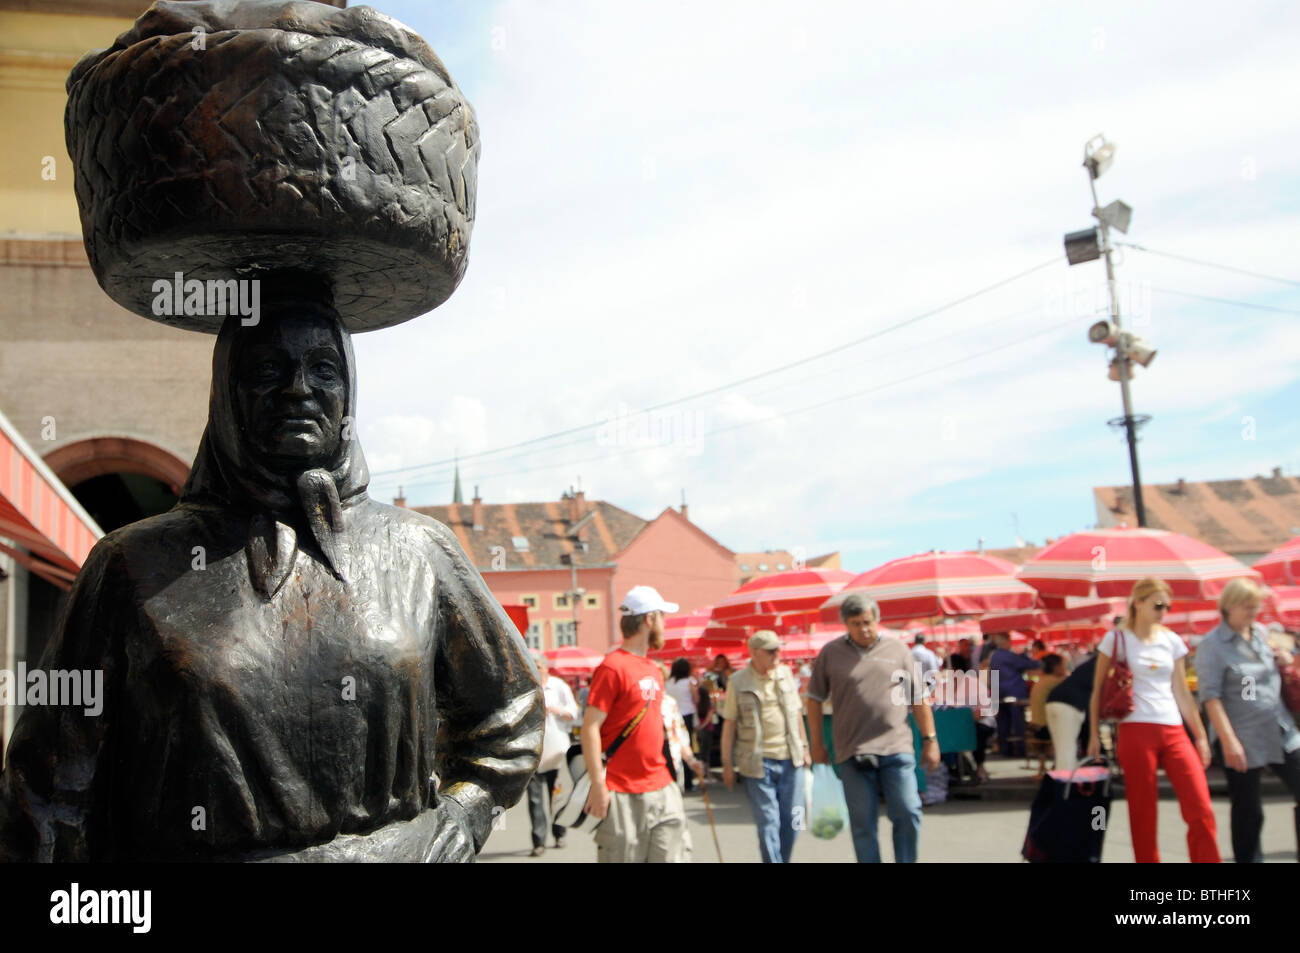 Ivan Mestrovic statue of a woman. Dolac Market. Zagreb, Croatia. Stock Photo